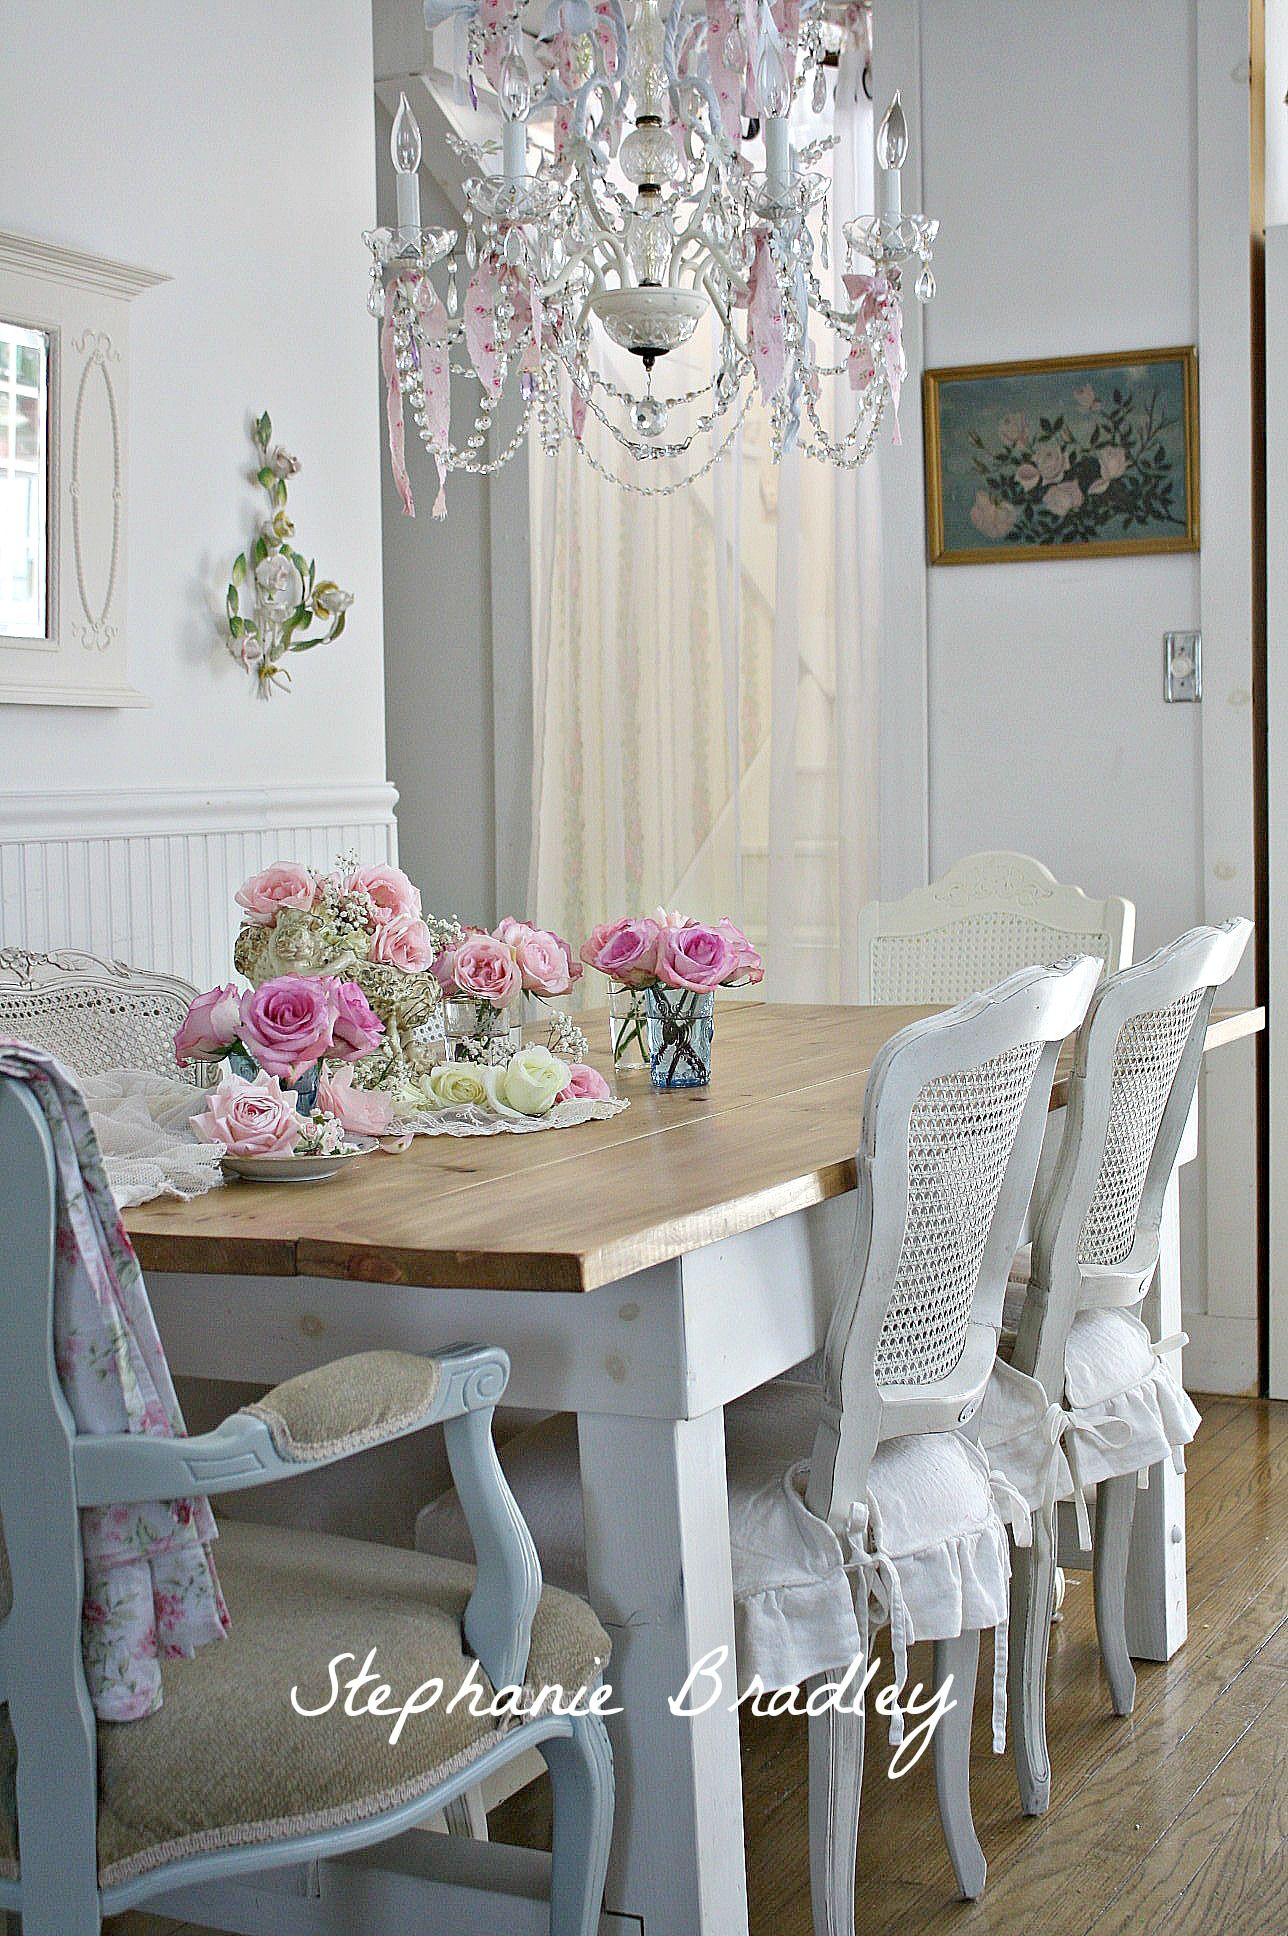 Shabby Chic dining room with Rose bedecked table everything looks